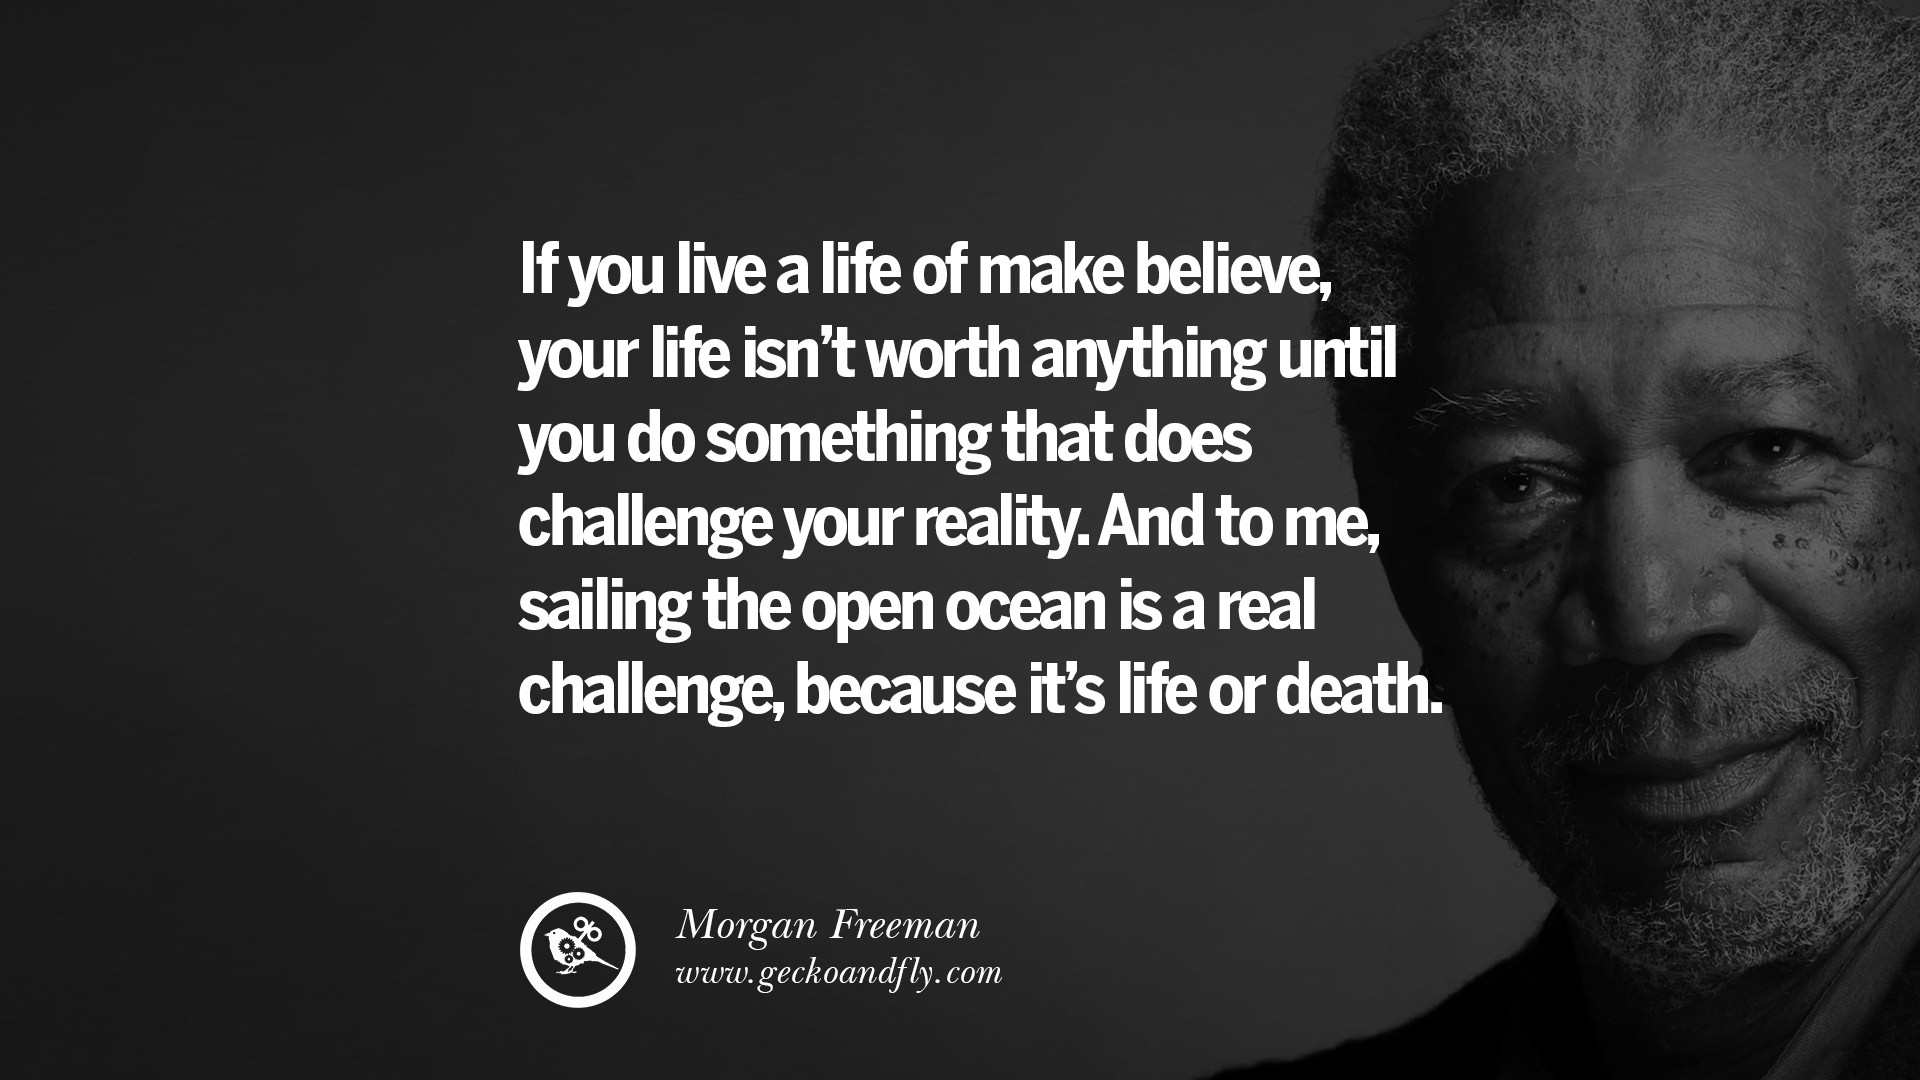 Quotes For Life And Death 10 Morgan Freeman Quotes On Life Death Success And Struggle